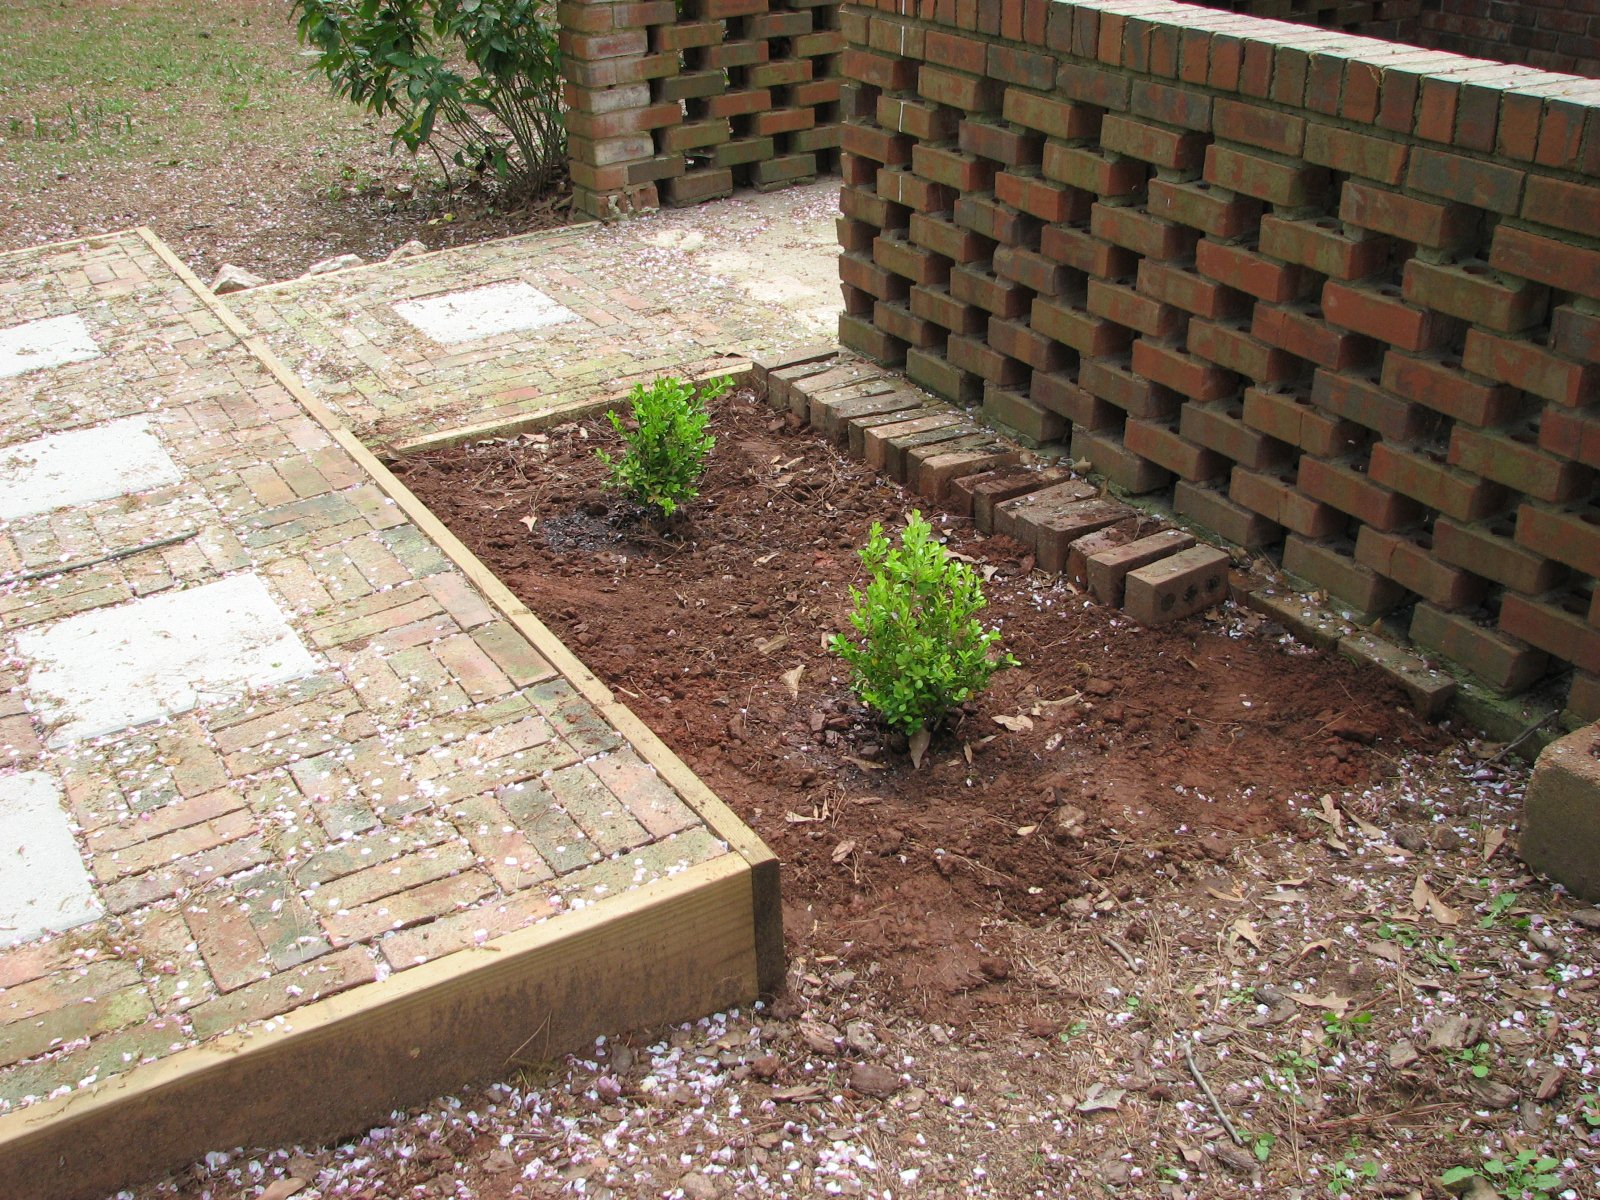 Backyard Landscaping Ideas-The Process of Building a Patio ... on Build Backyard Patio id=58152